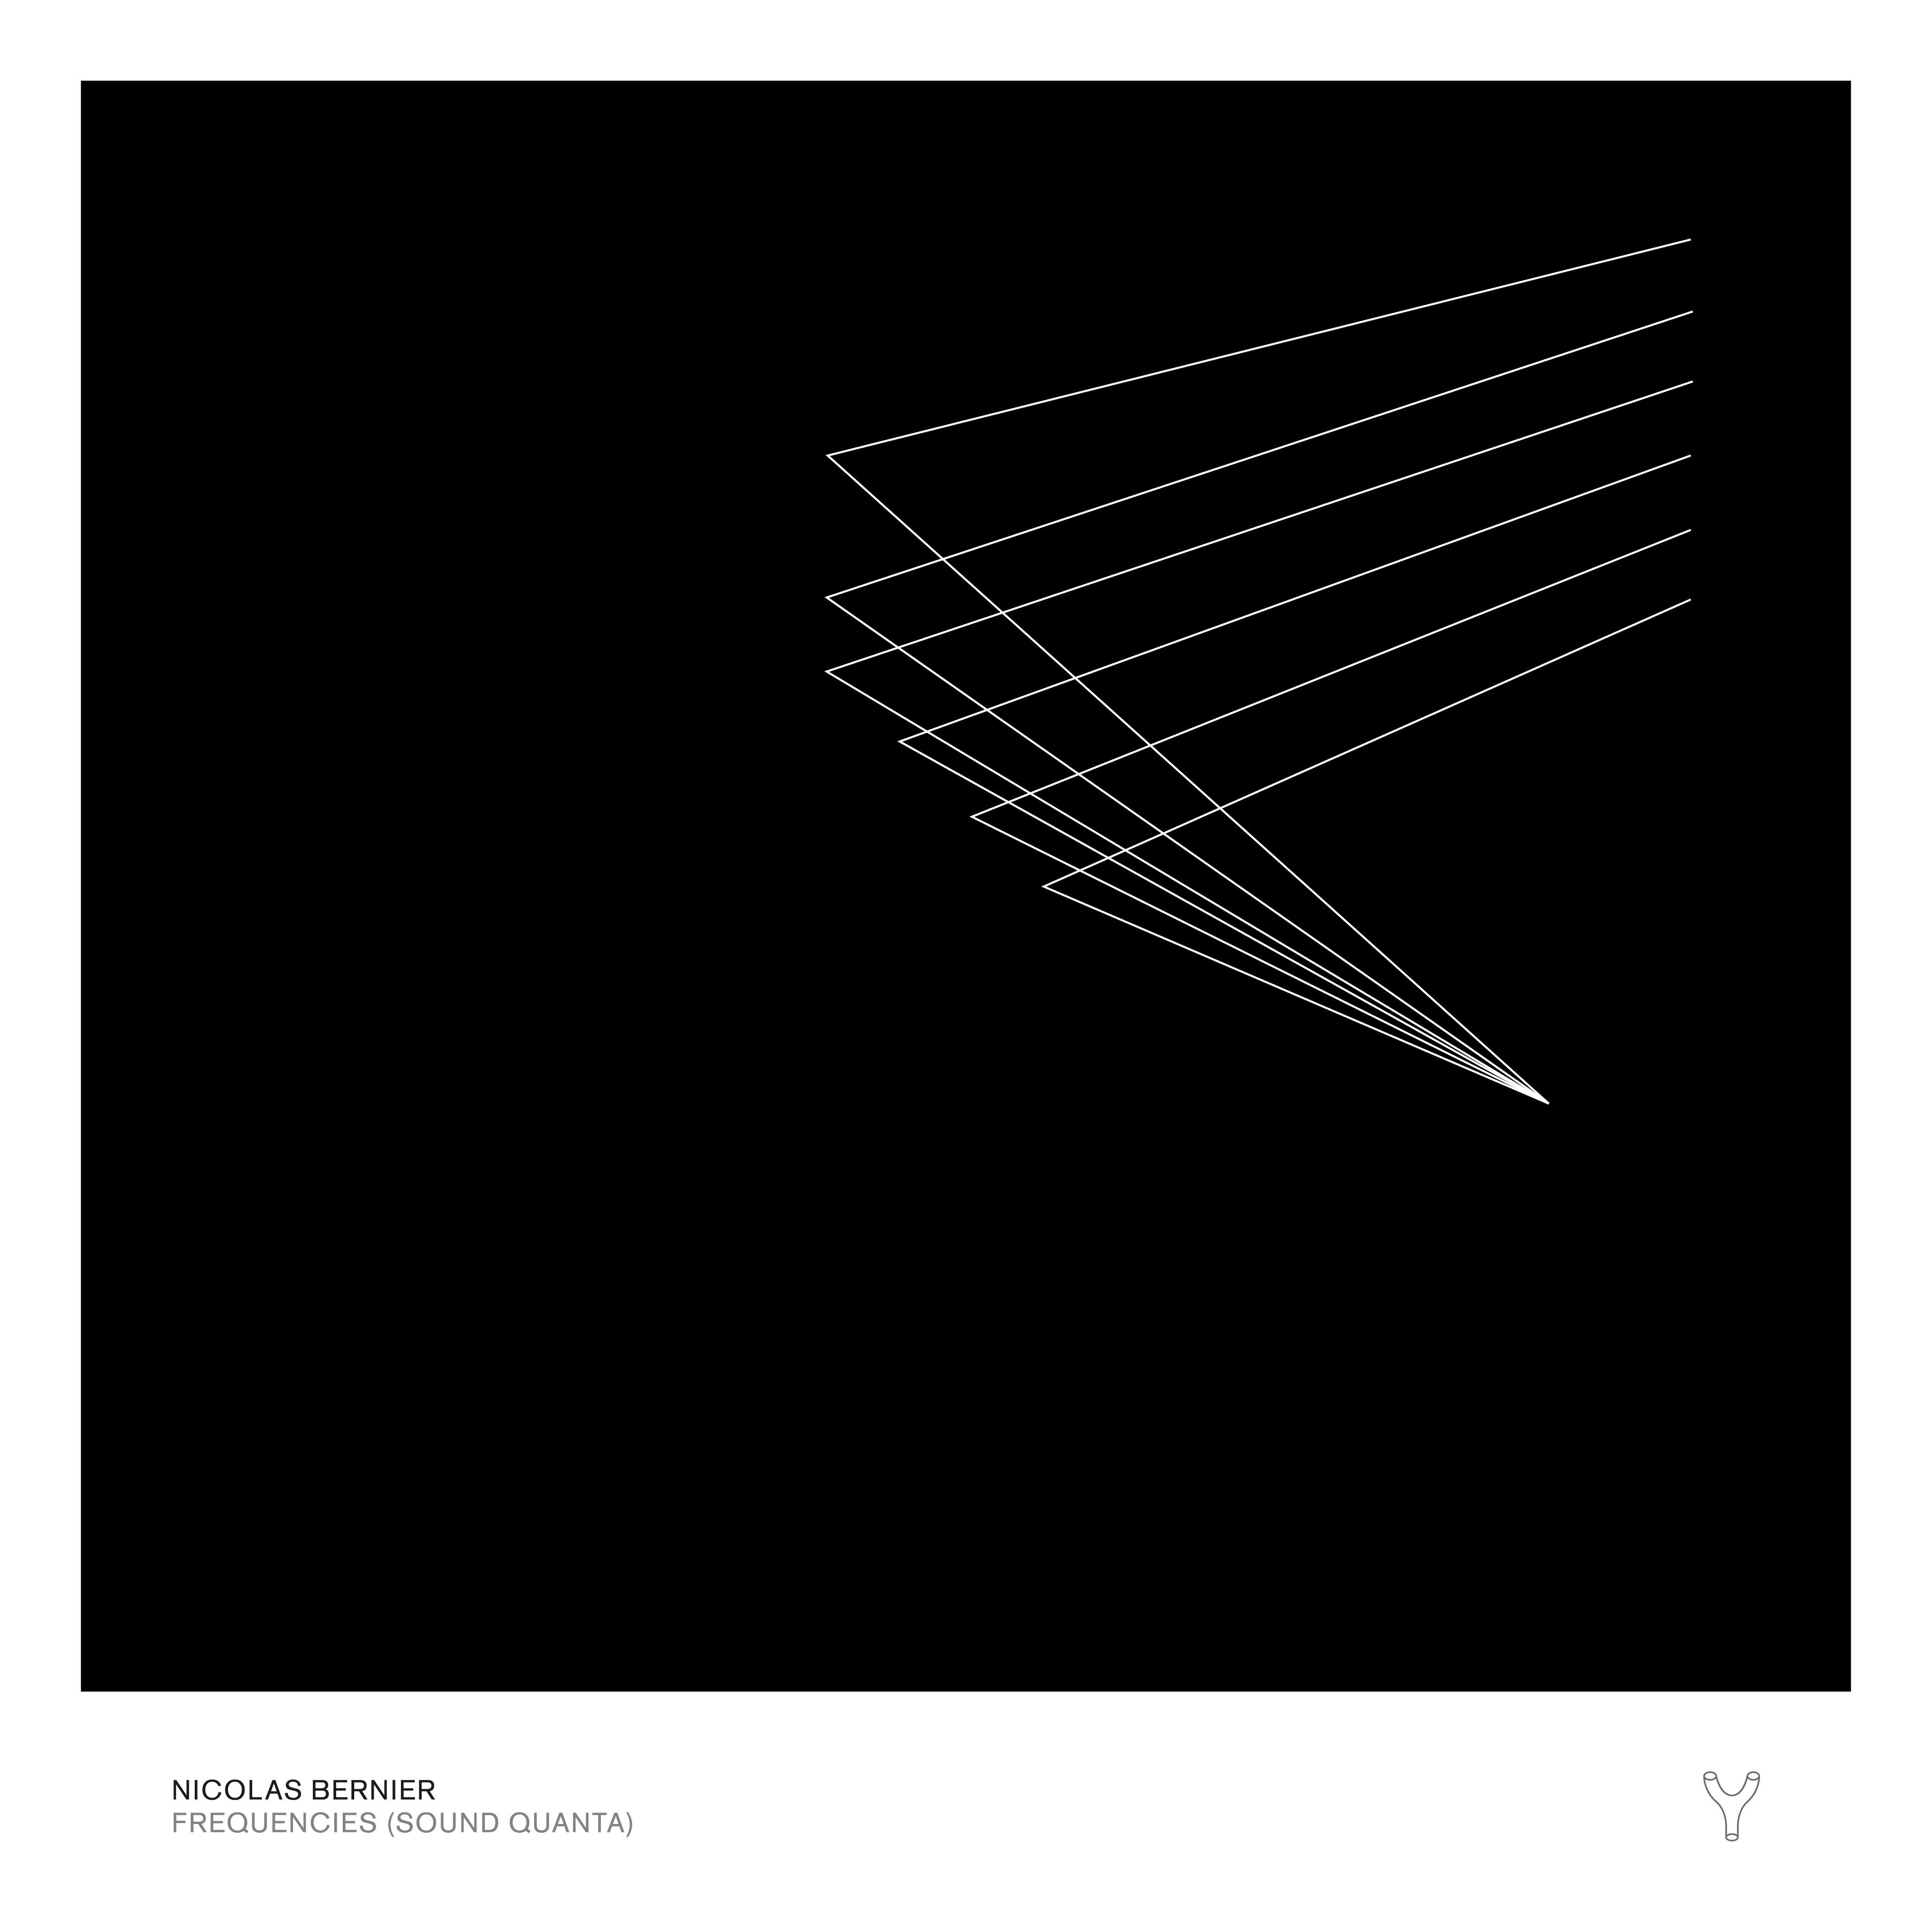 Nicolas Bernier — frequencies (sound quanta)